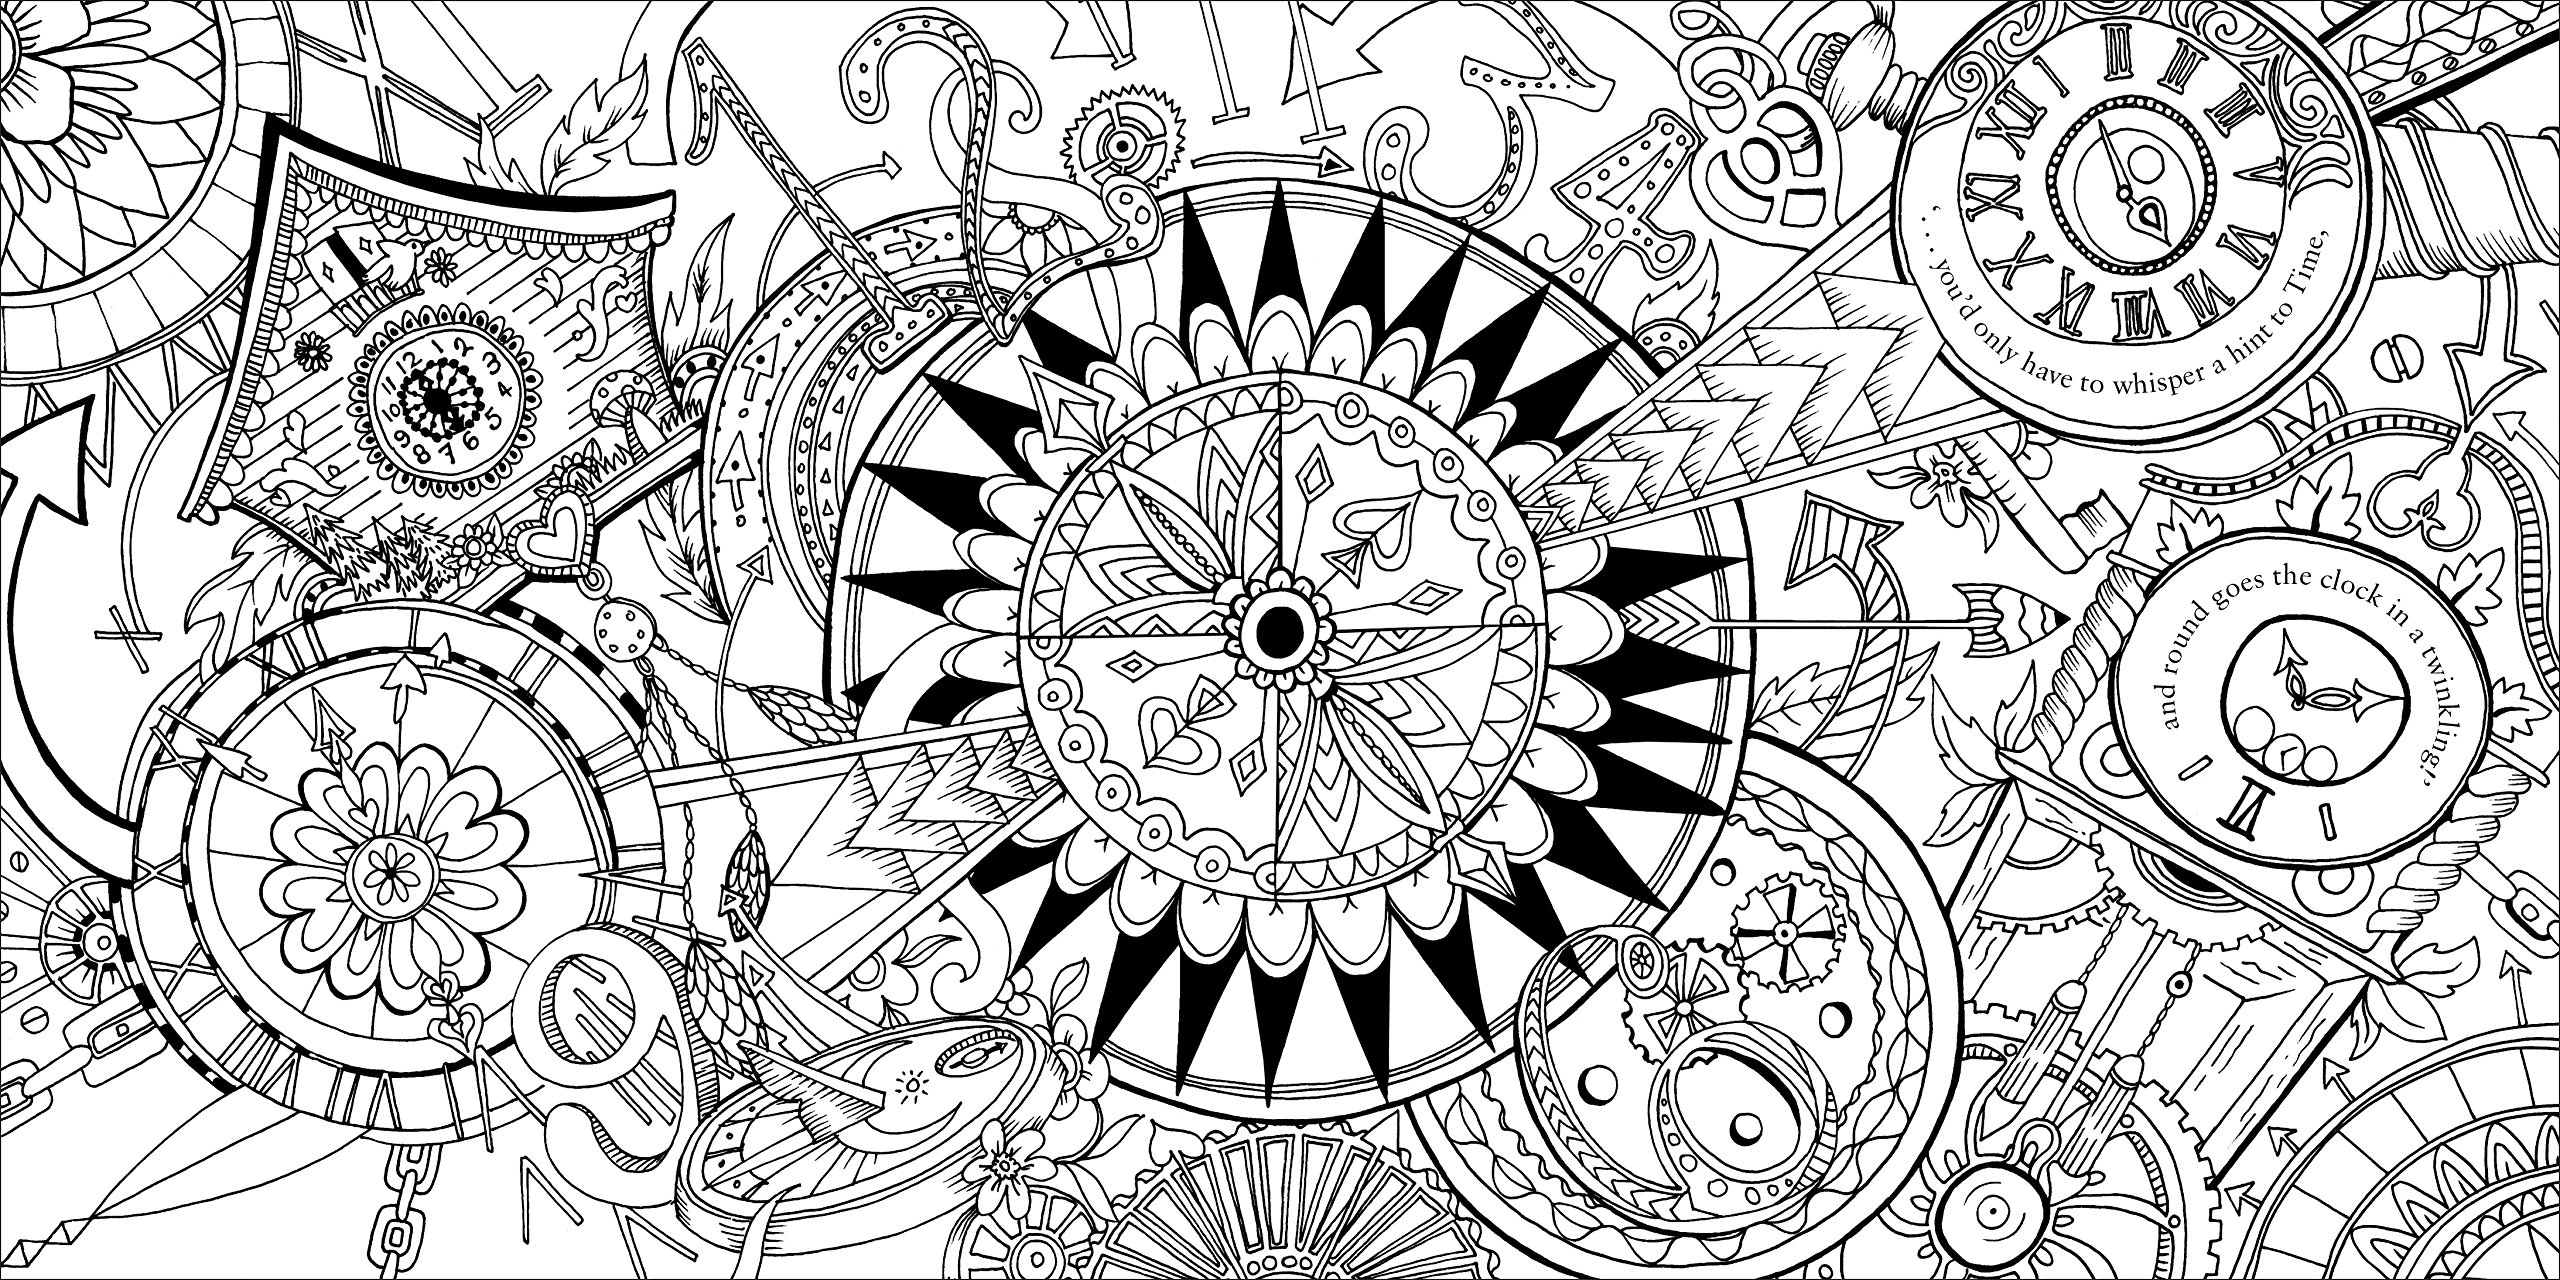 Colouring book - Buy Escape To Wonderland A Colouring Book Adventure Book Online At Low Prices In India Escape To Wonderland A Colouring Book Adventure Reviews Ratings